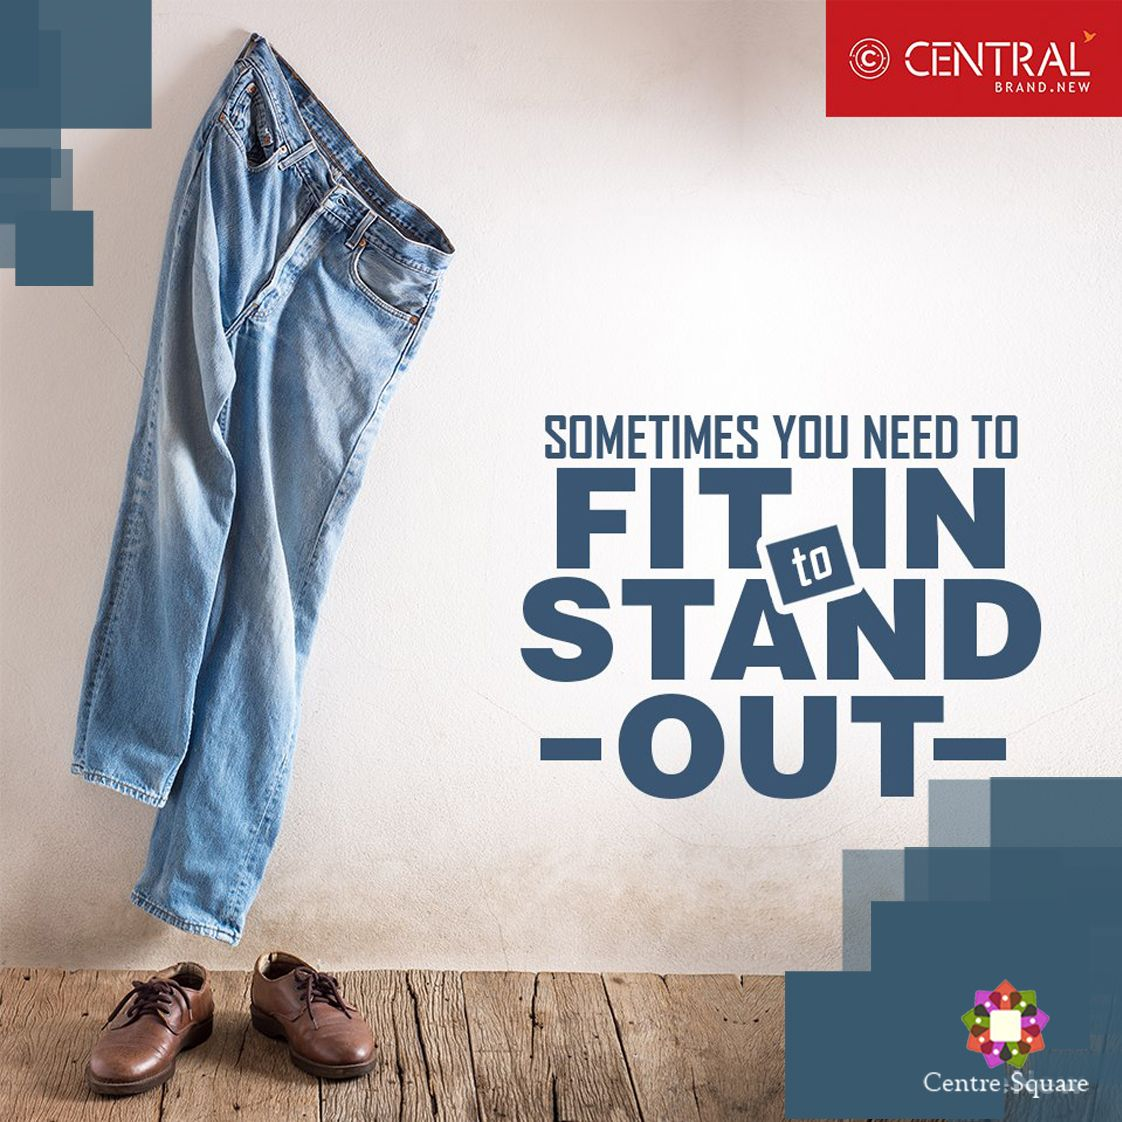 Slip in your favorite pair of denims and get going! #NothingLikeNew #Central #CentreSquare